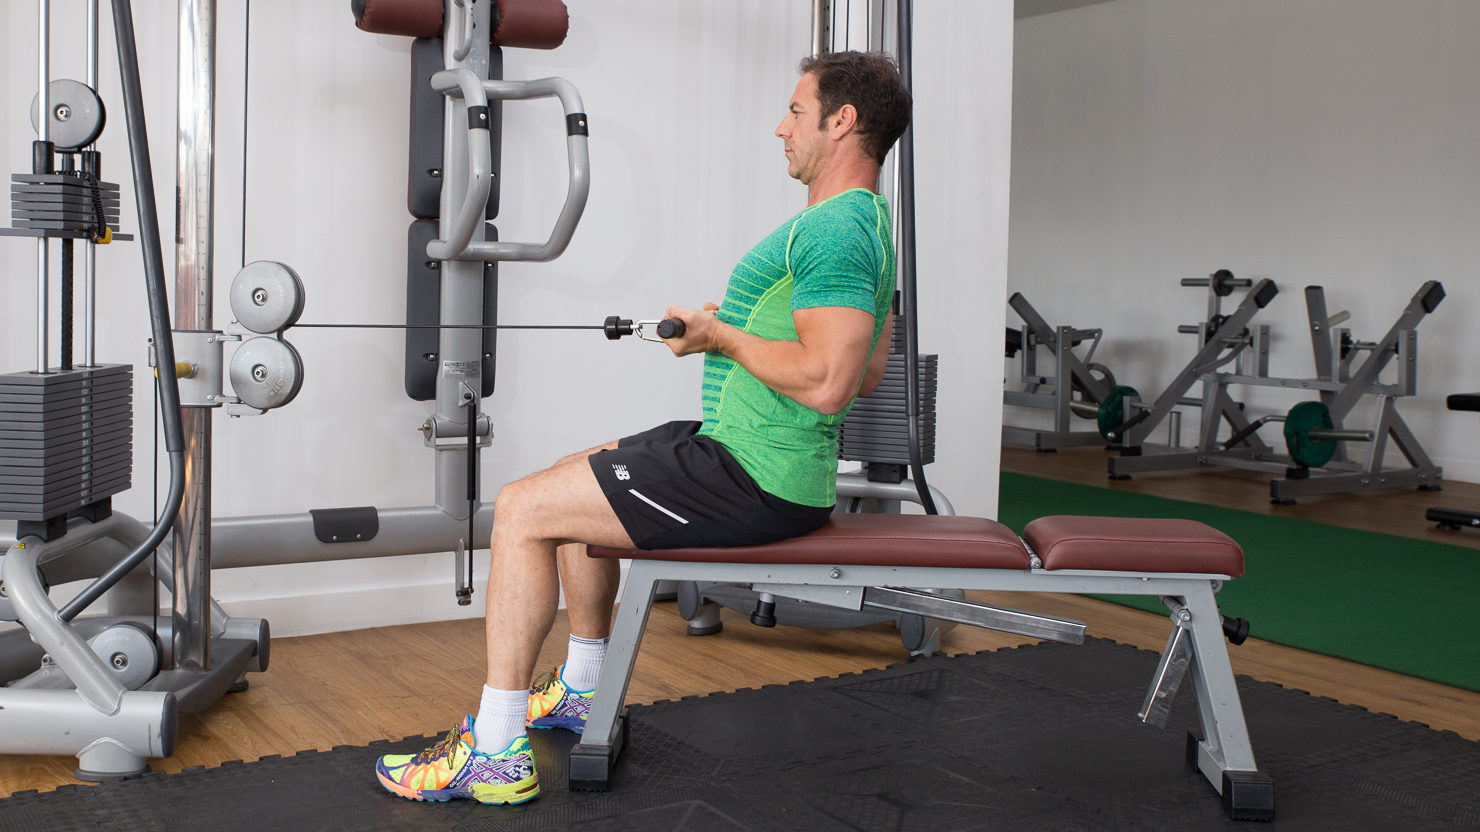 Gym Exercise Video Library Cable Row